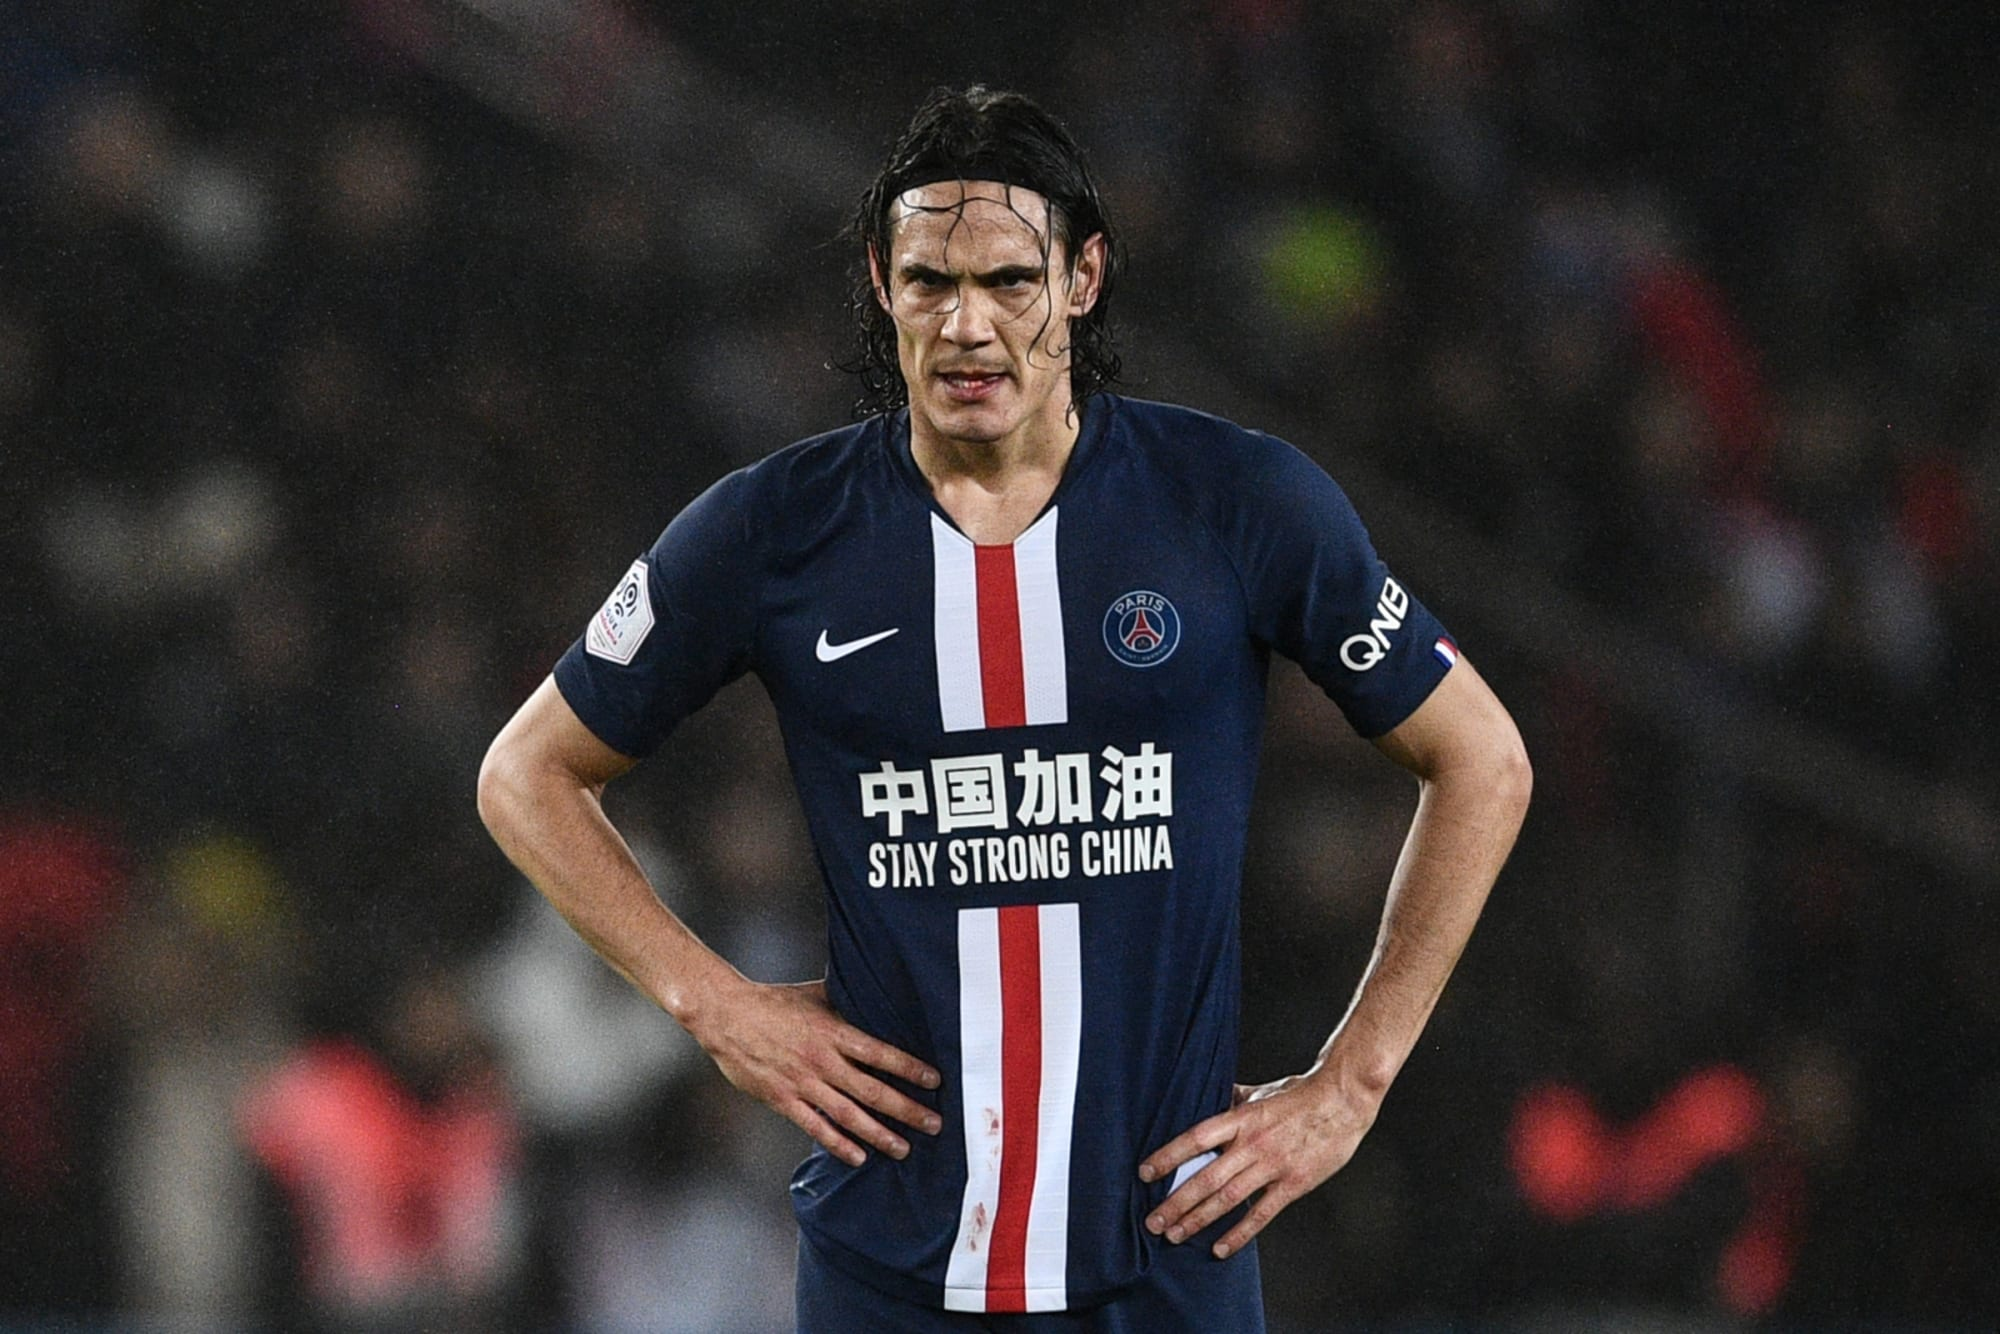 Newcastle United: Pros and cons to signing Edinson Cavani this summer